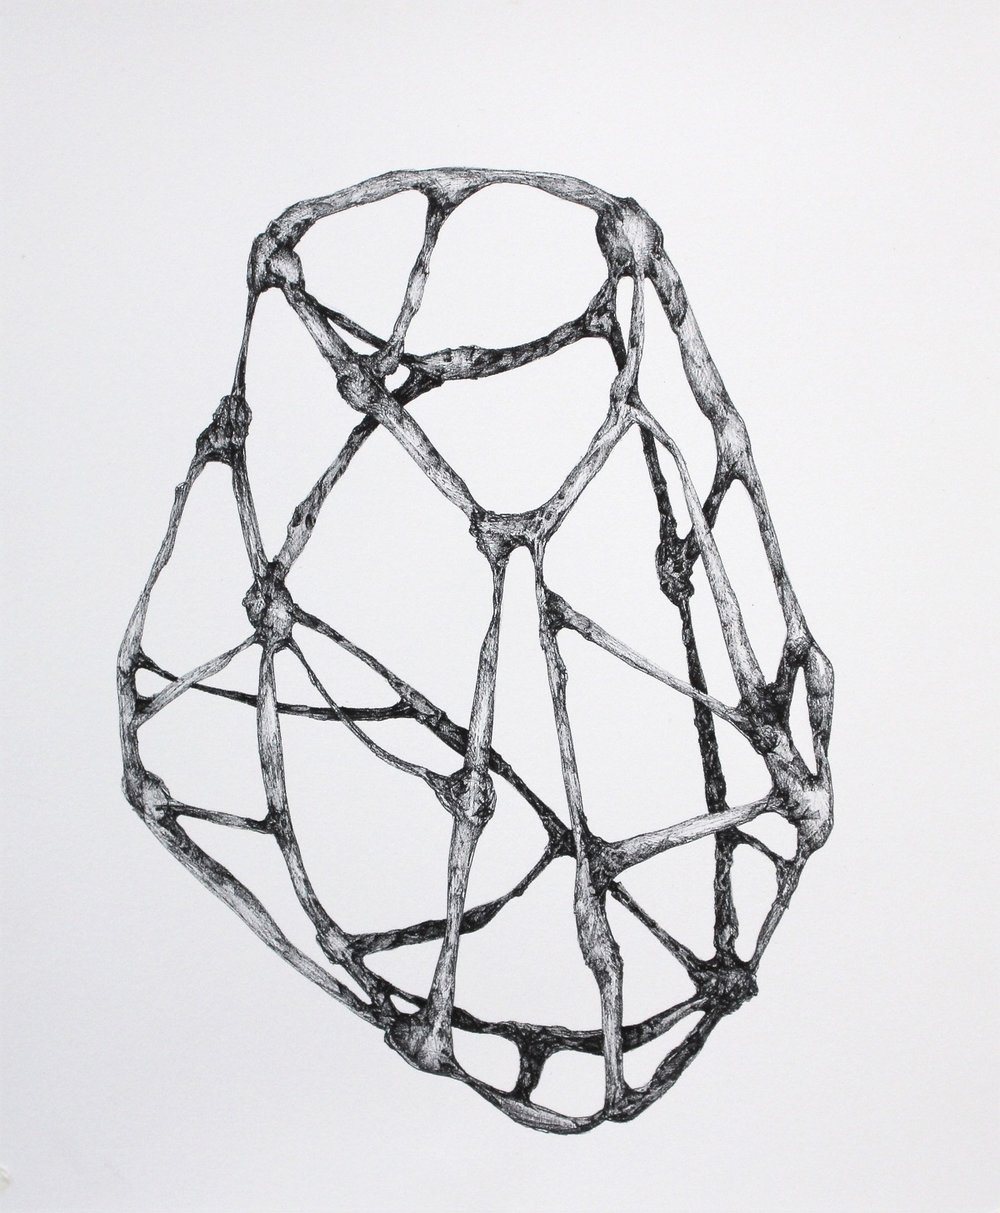 09_LisaKellner_Structures #5_Ink on Paper_12 x 12 inches_$200.JPG